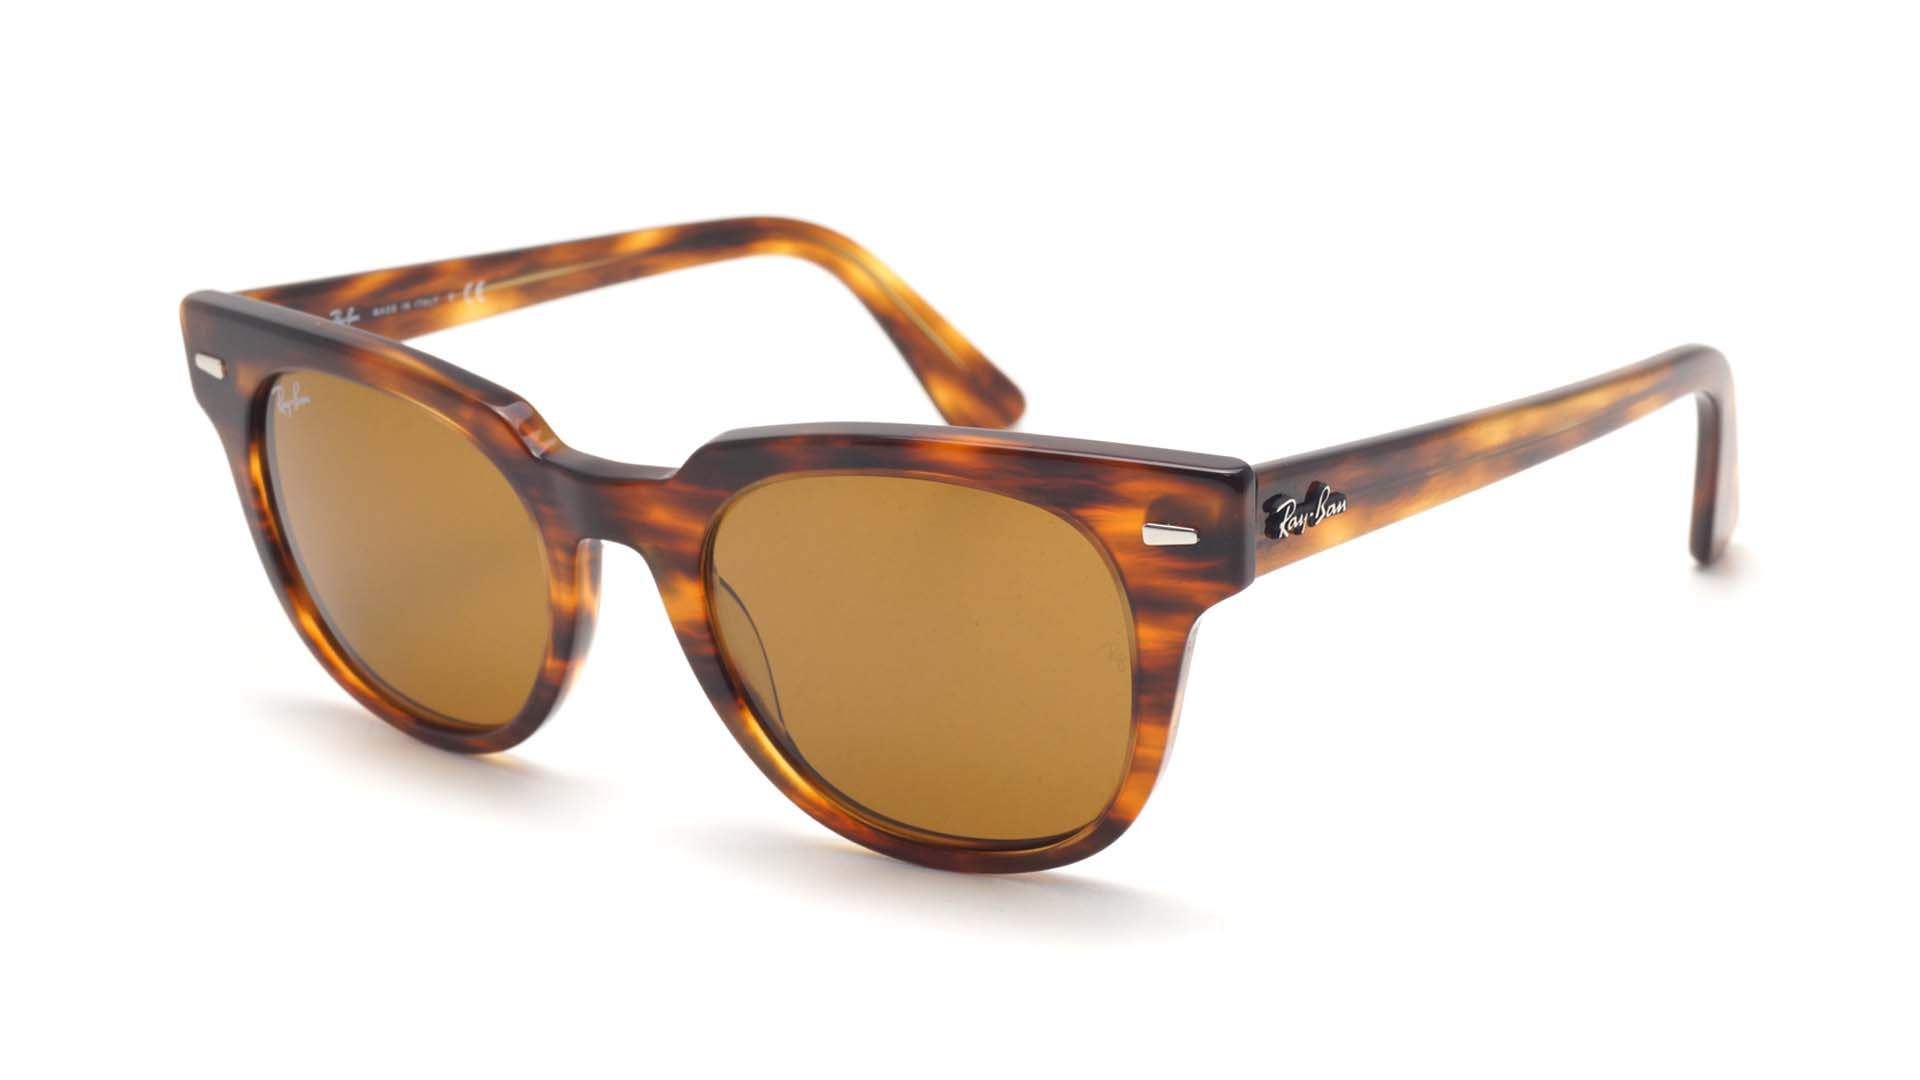 4e22764dfe2ba9 Sunglasses Ray-Ban Meteor Tortoise B15 RB2168 954 33 50-20 Medium